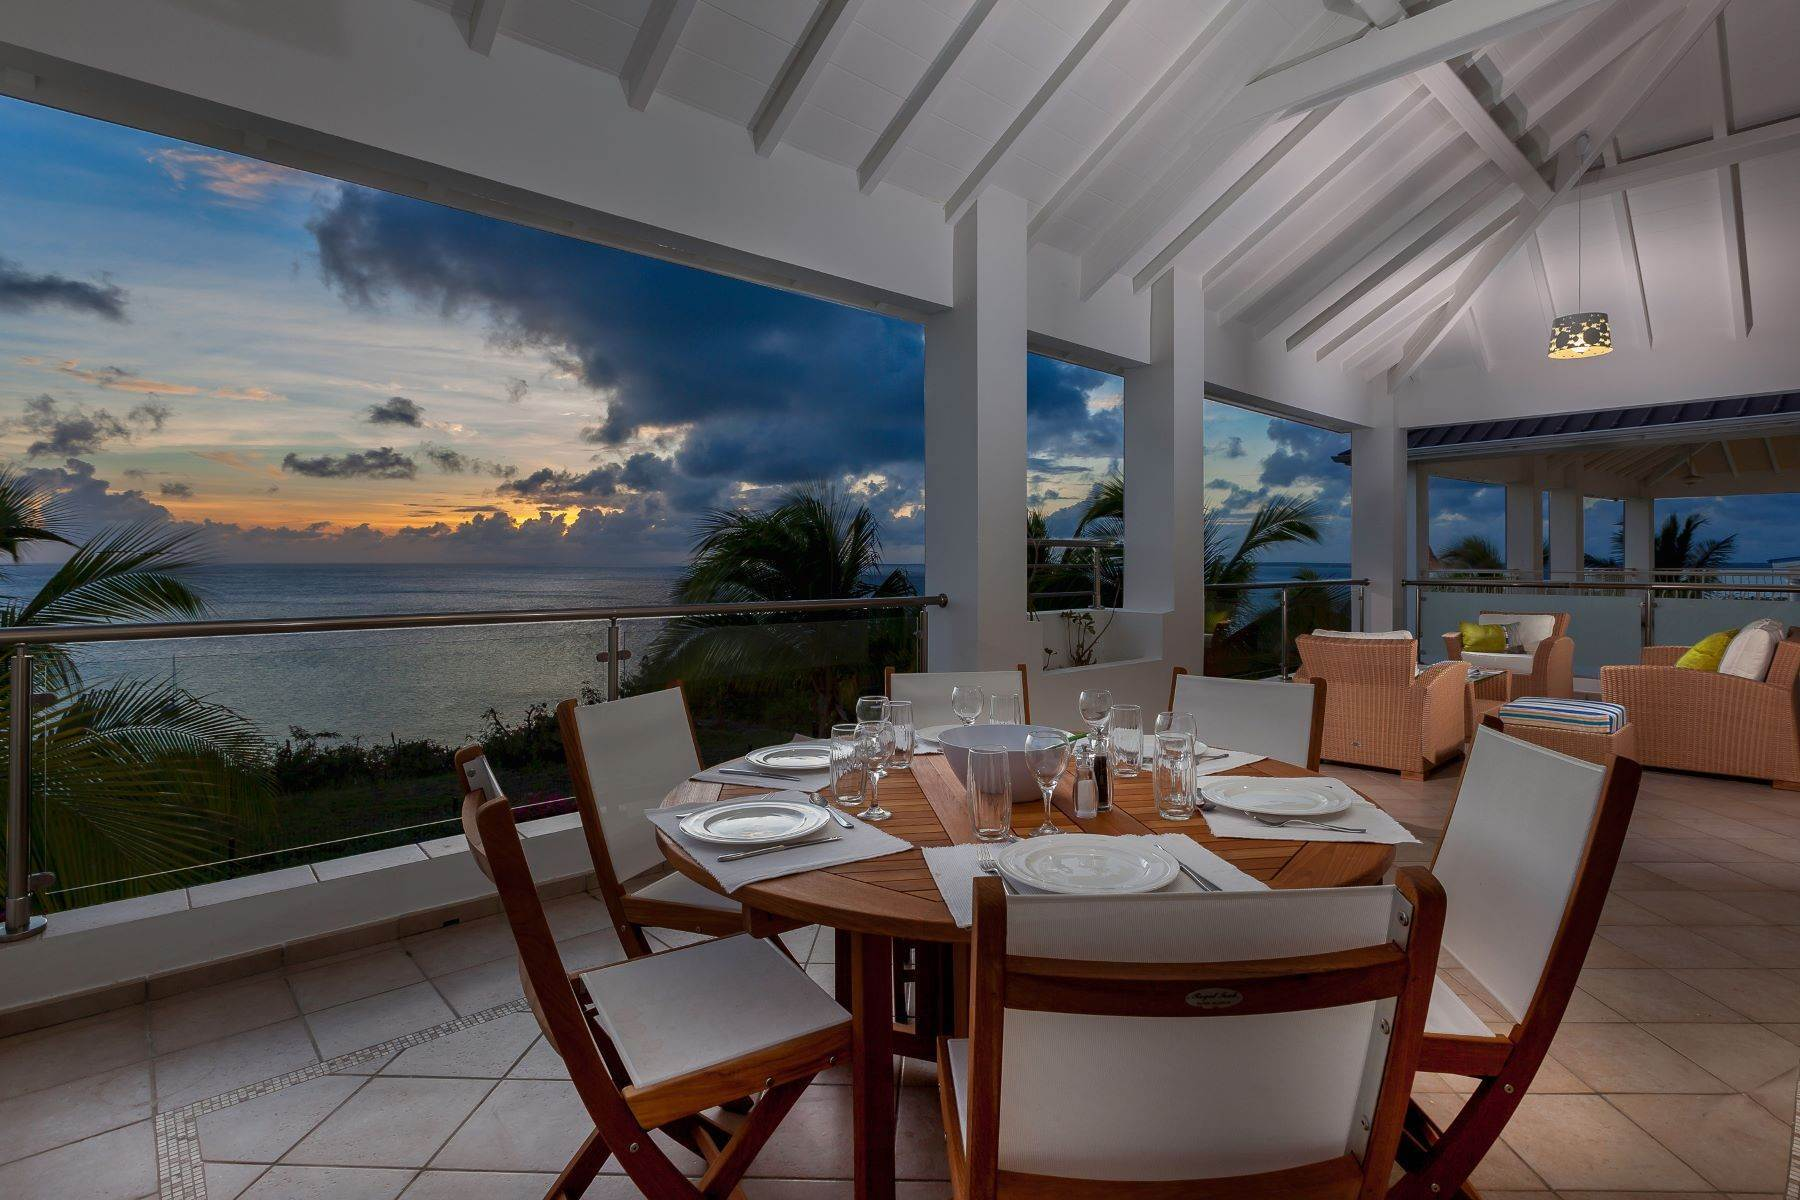 Single Family Homes at Sea Dream Happy Bay, 97150, St. Martin